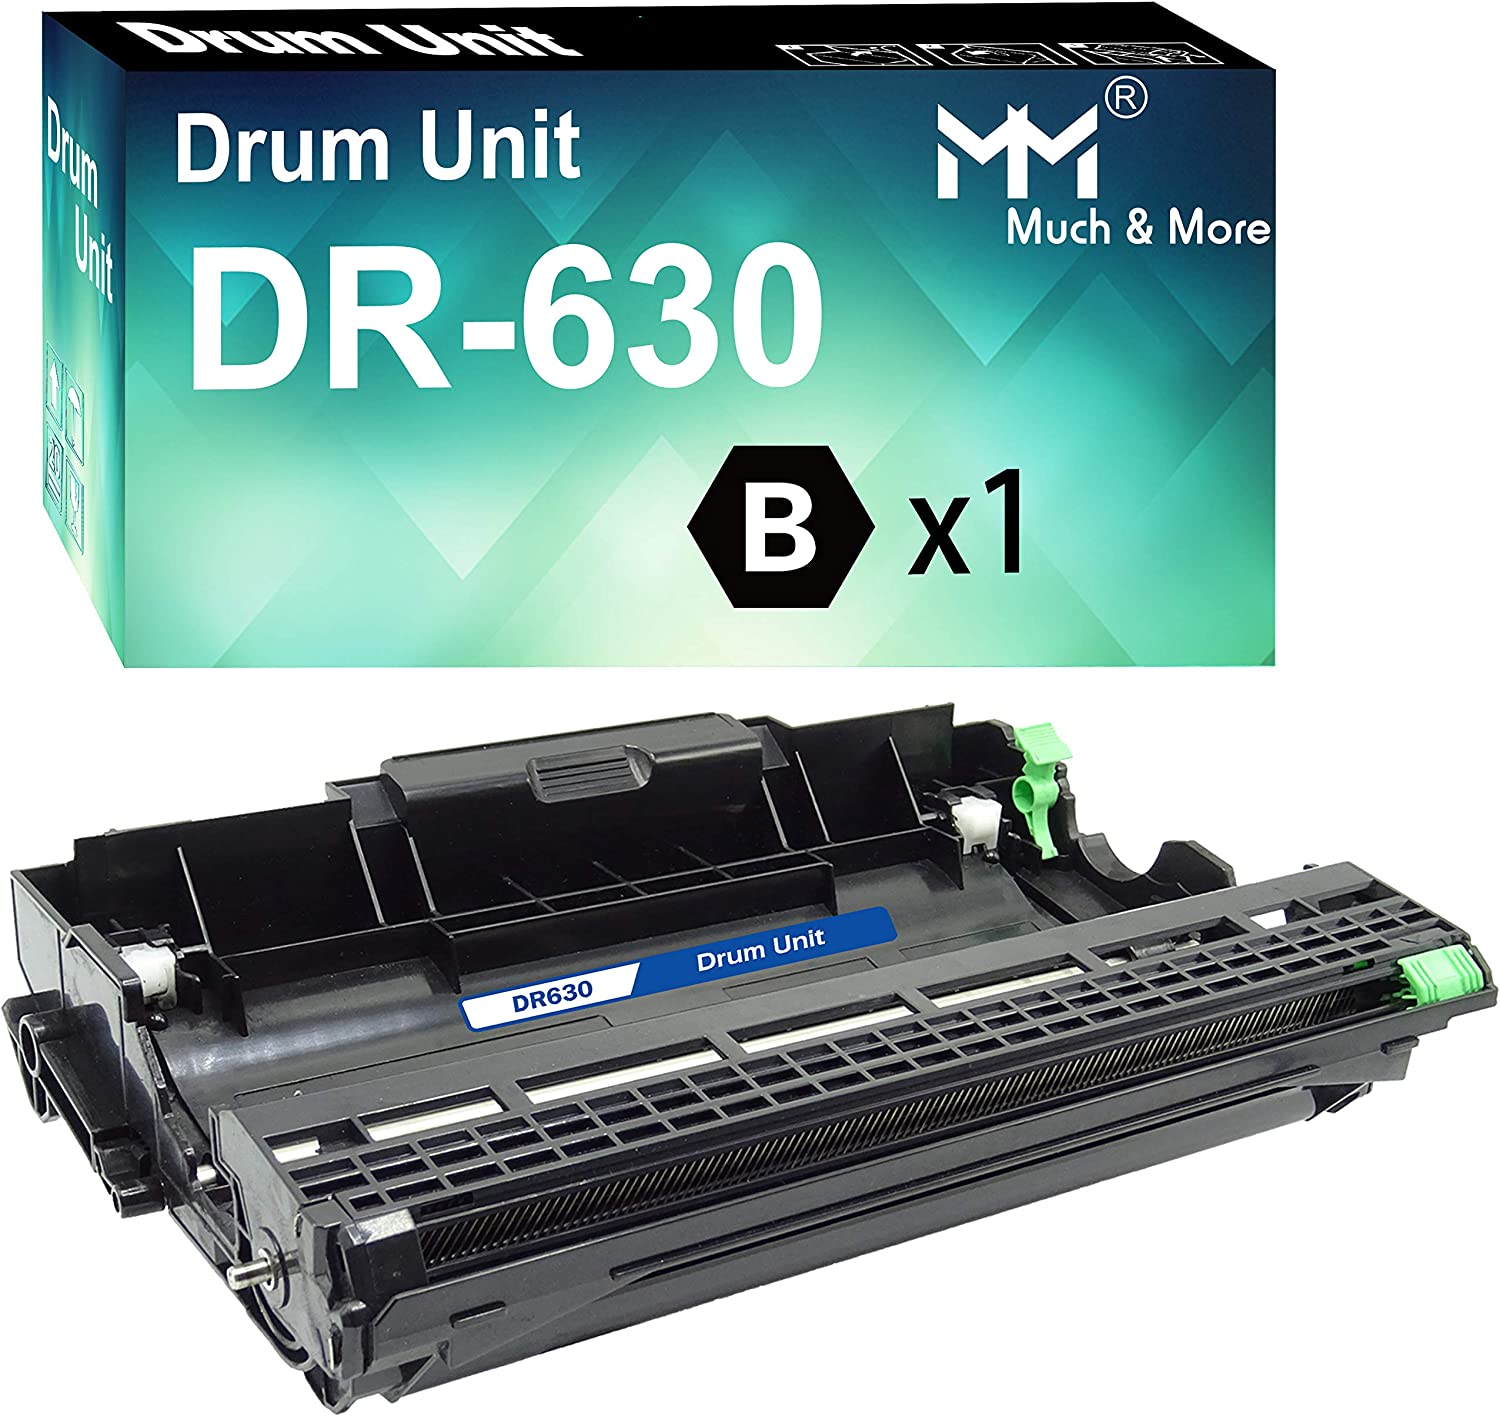 MM MUCH & MORE Compatible Drum Unit Replacement for DR-630 DR630 Used with DCP-L2520DW DCP-L2540DW HL-L2300D HL-L2320D HL-L2340DW HL-L2360DW HL-L2380DW HL-L2680W MFC-L2700DW Printers (1-Pack)